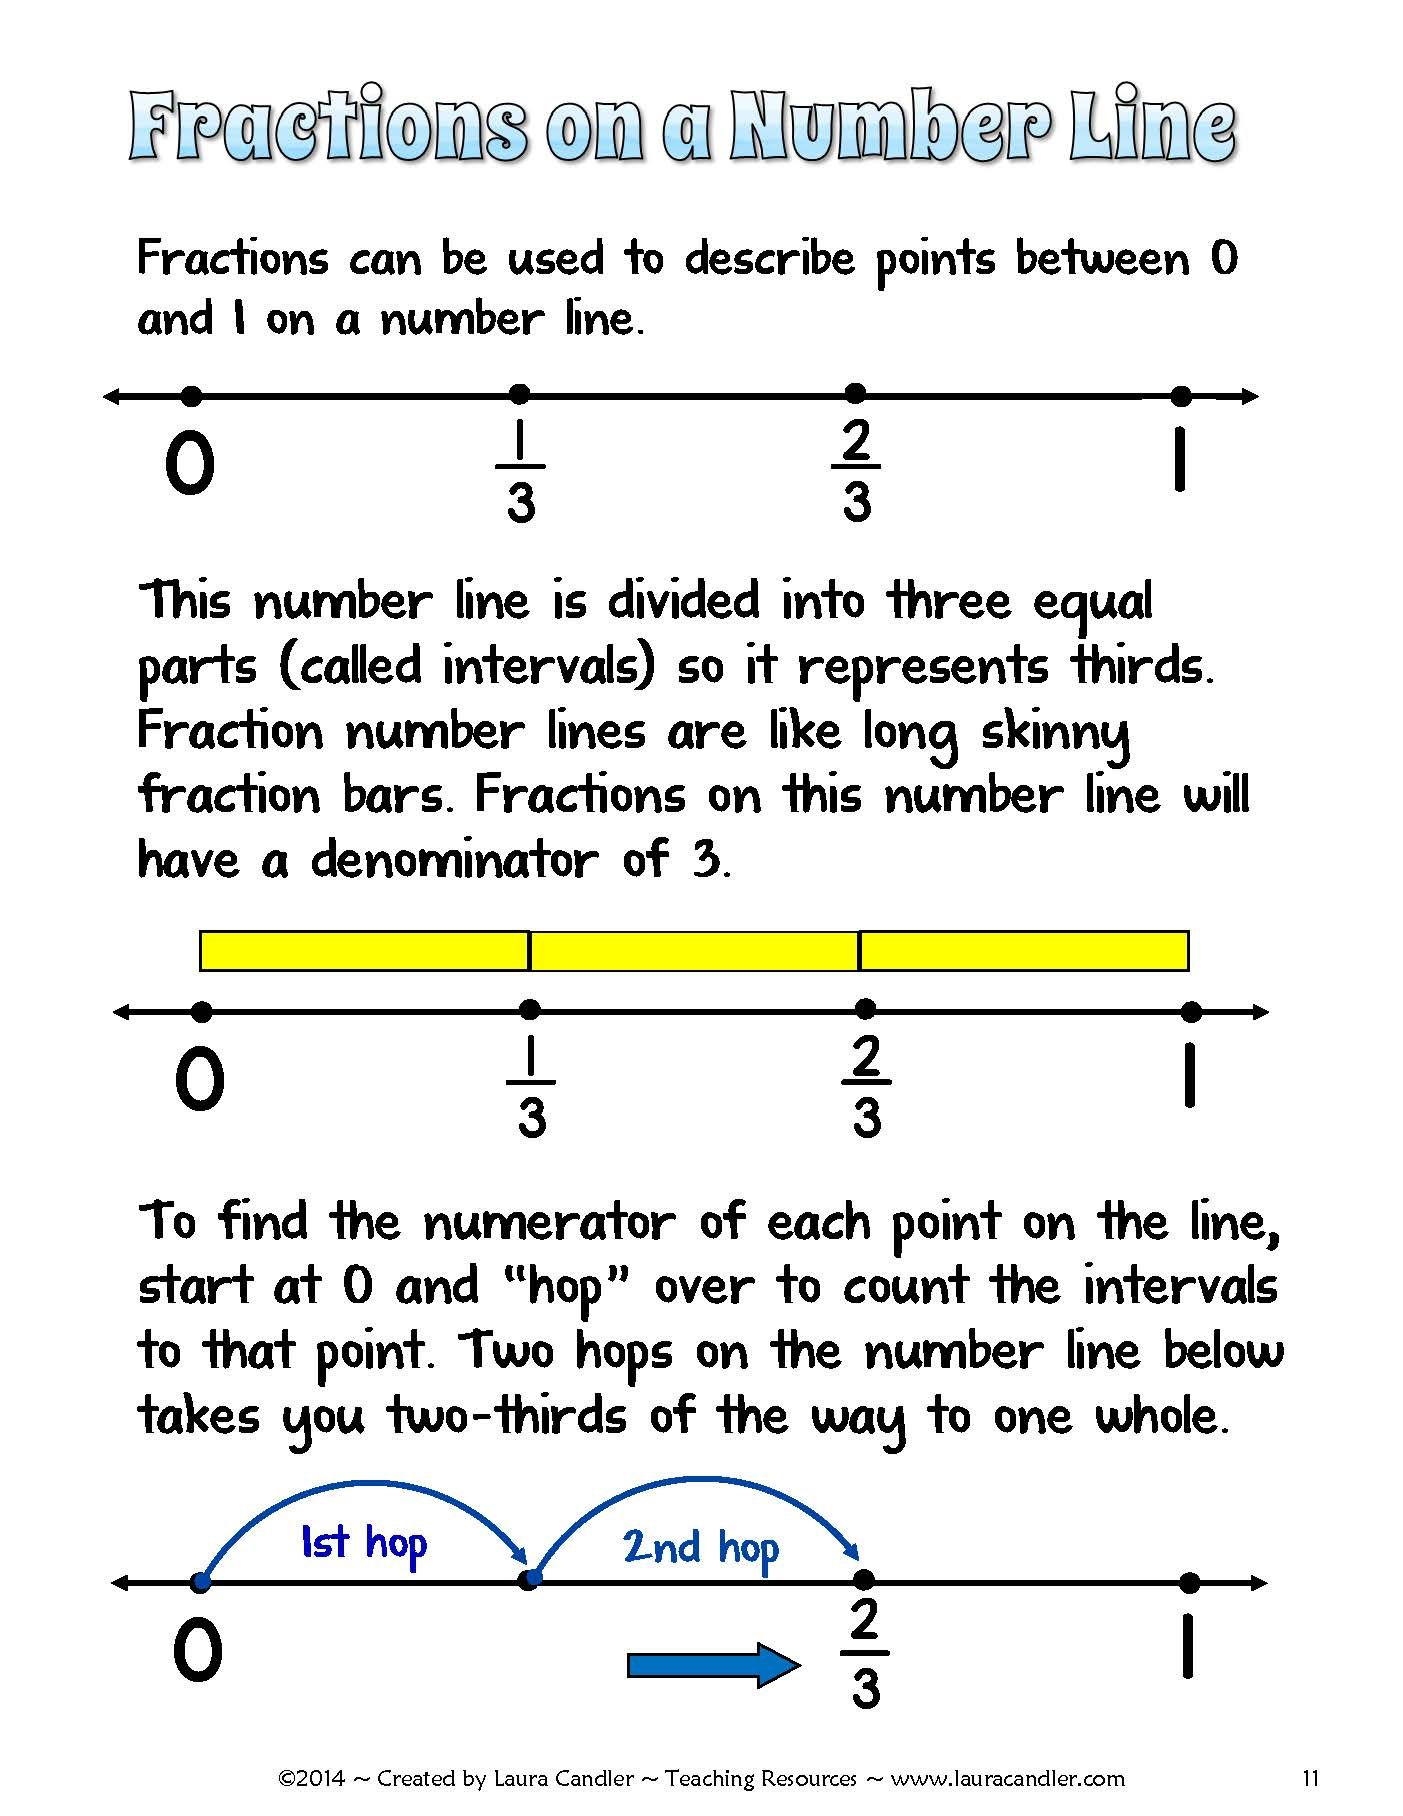 worksheet Fraction Number Line introductory fraction number line lesson from penguin fractions exploring the basics aligned with 3rd